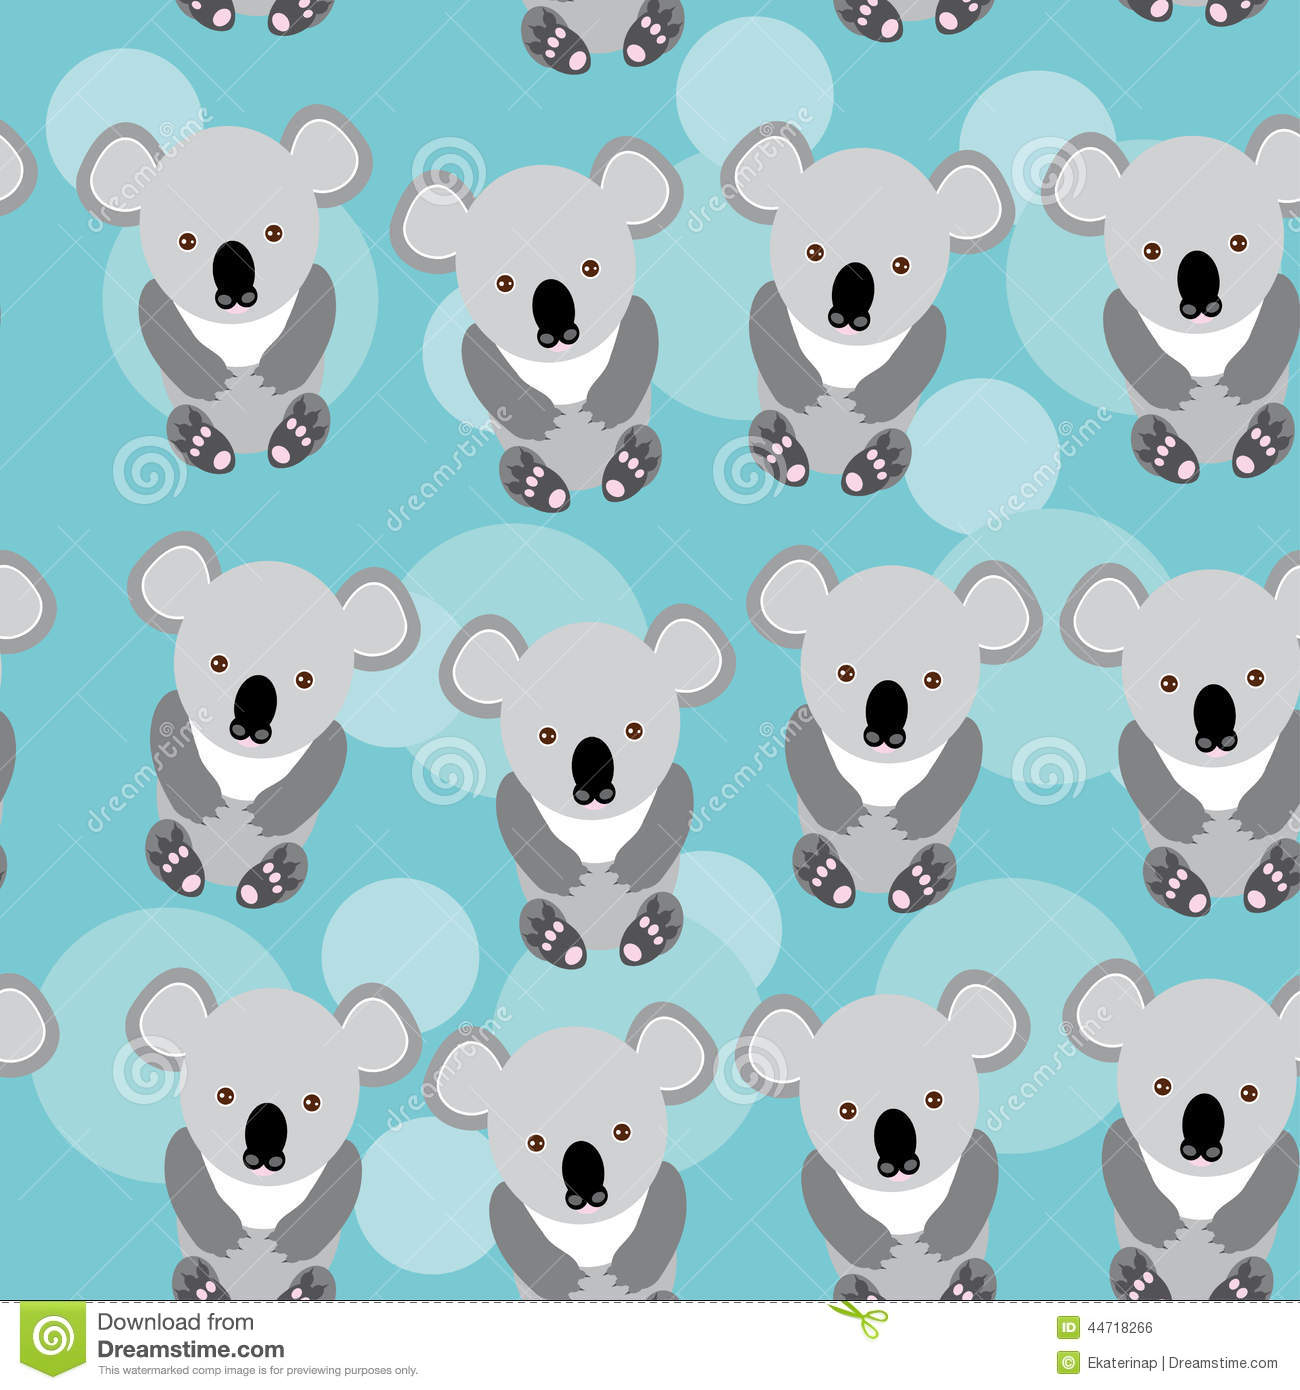 Koala Seamless Pattern With Funny Cute Animal On A Blue